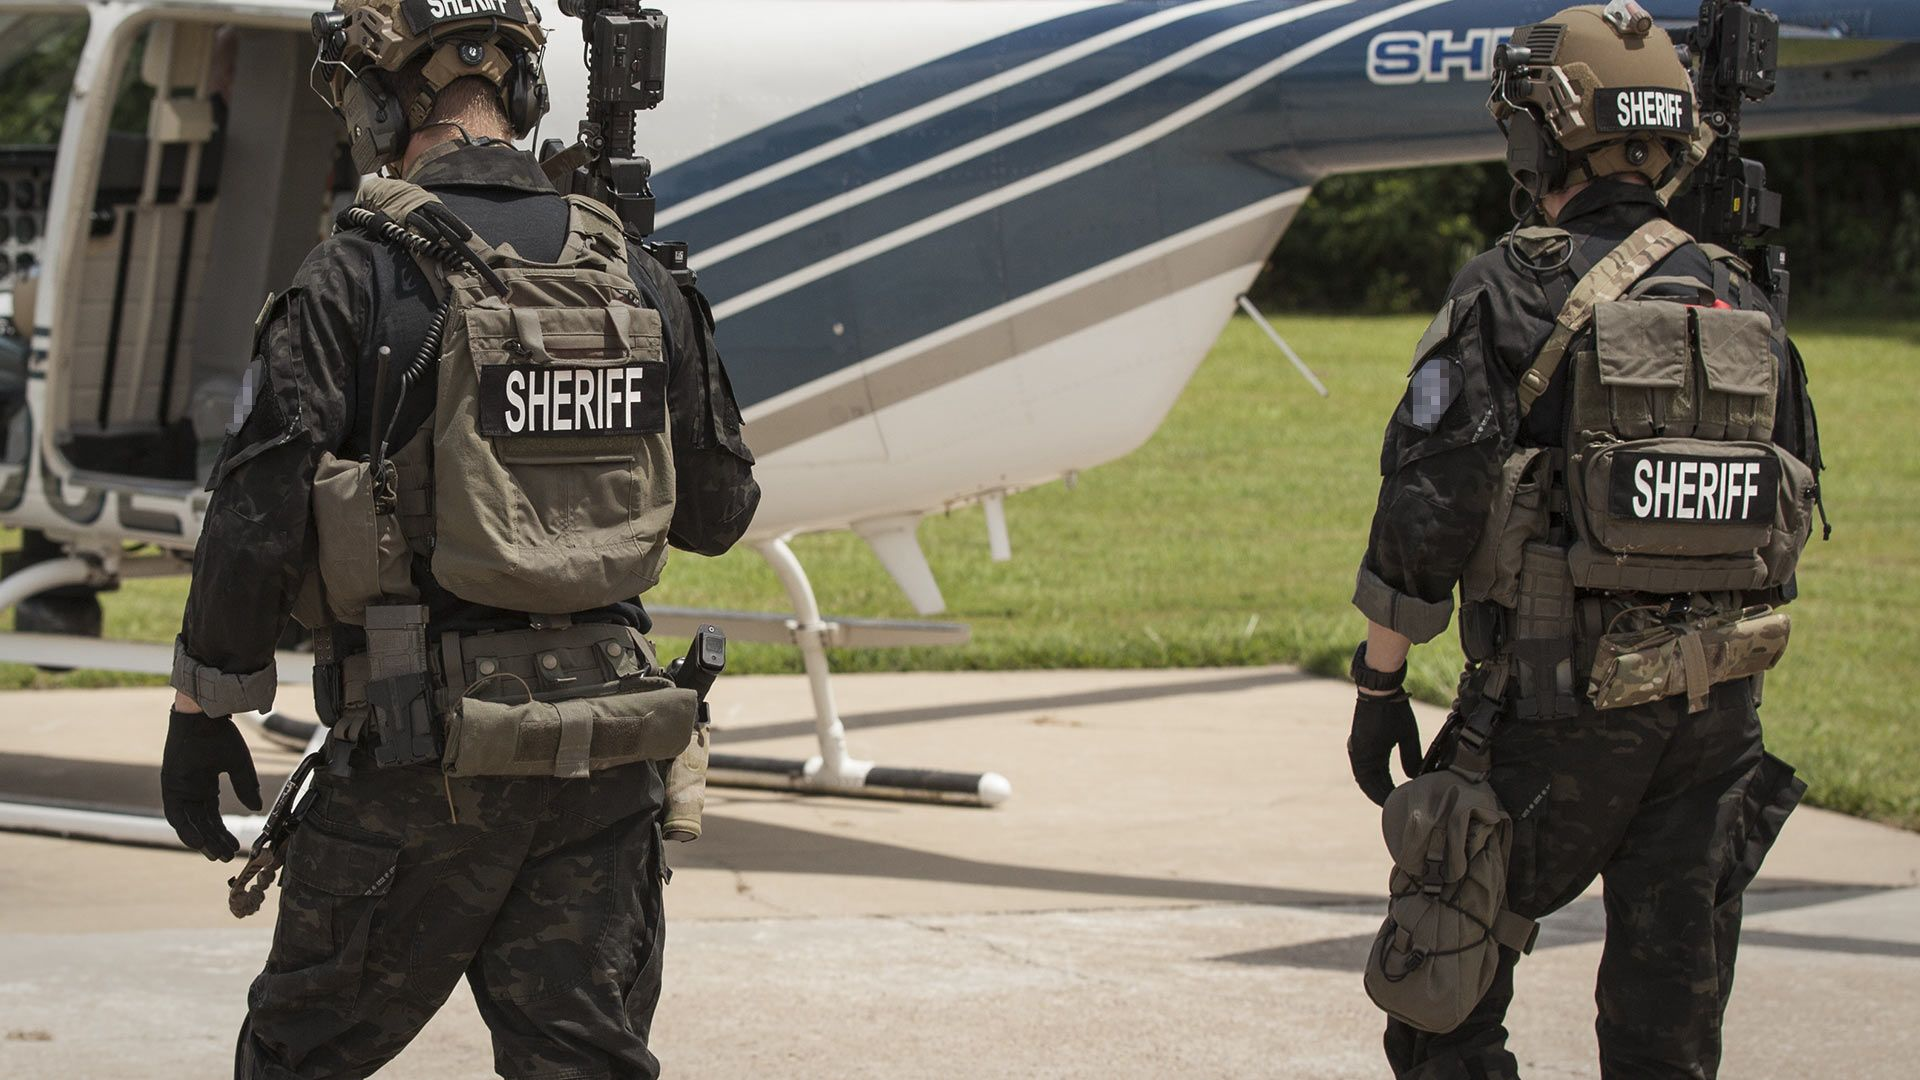 Swat 4 sheriffs special forces